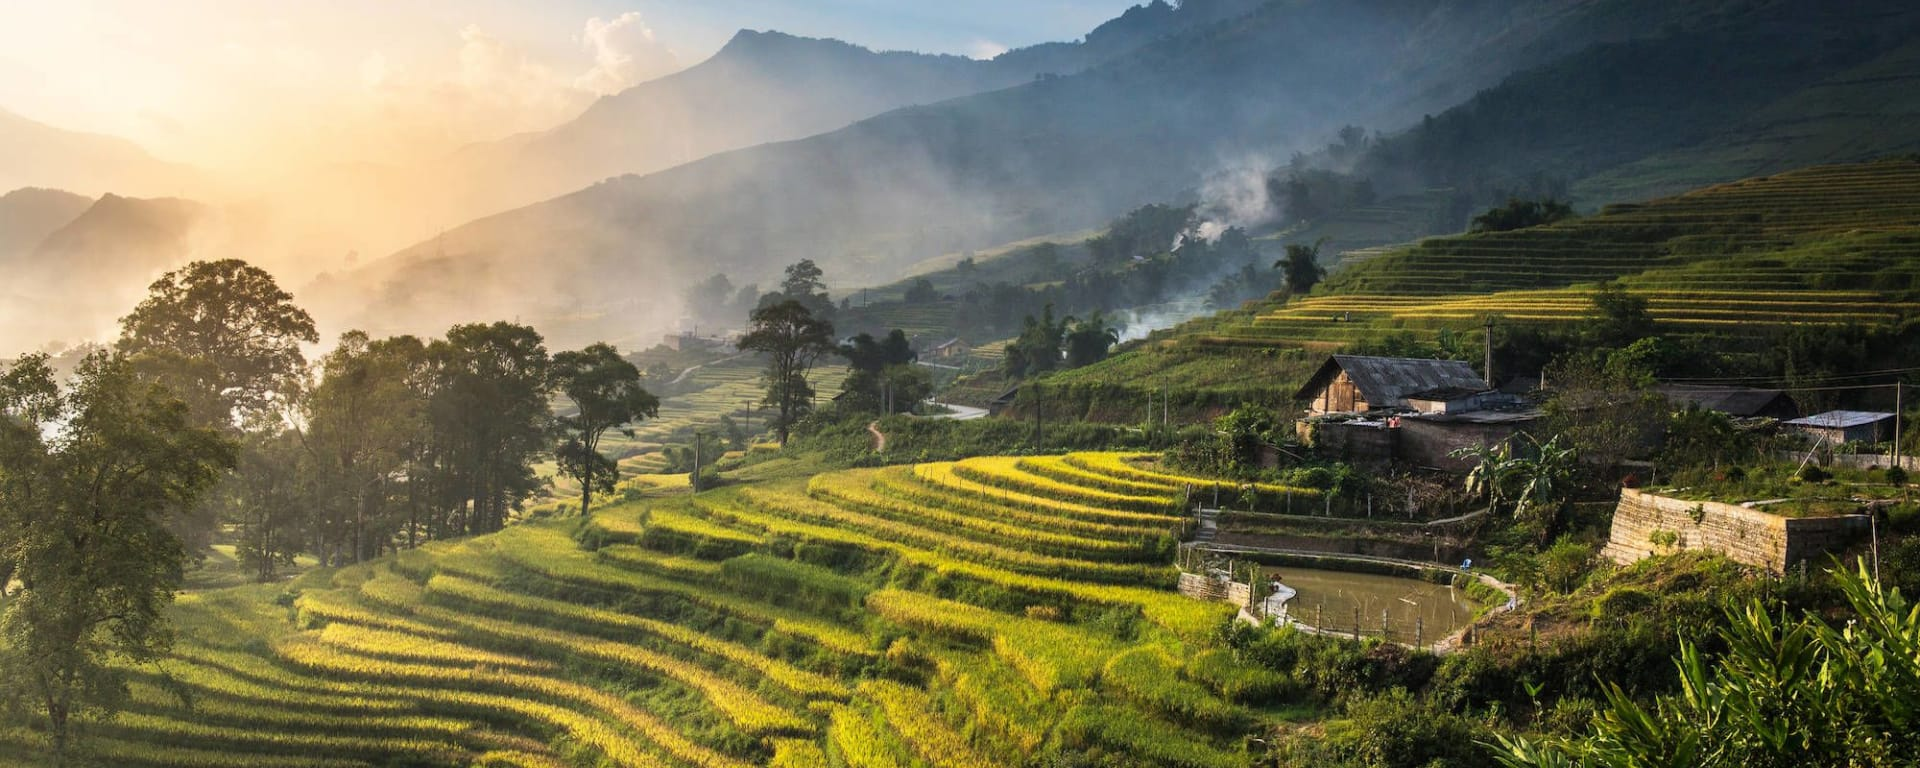 Aventure à Sapa - Hiking package de Hanoi: Terraced rice fields during sunset at Lao Cai Sapa